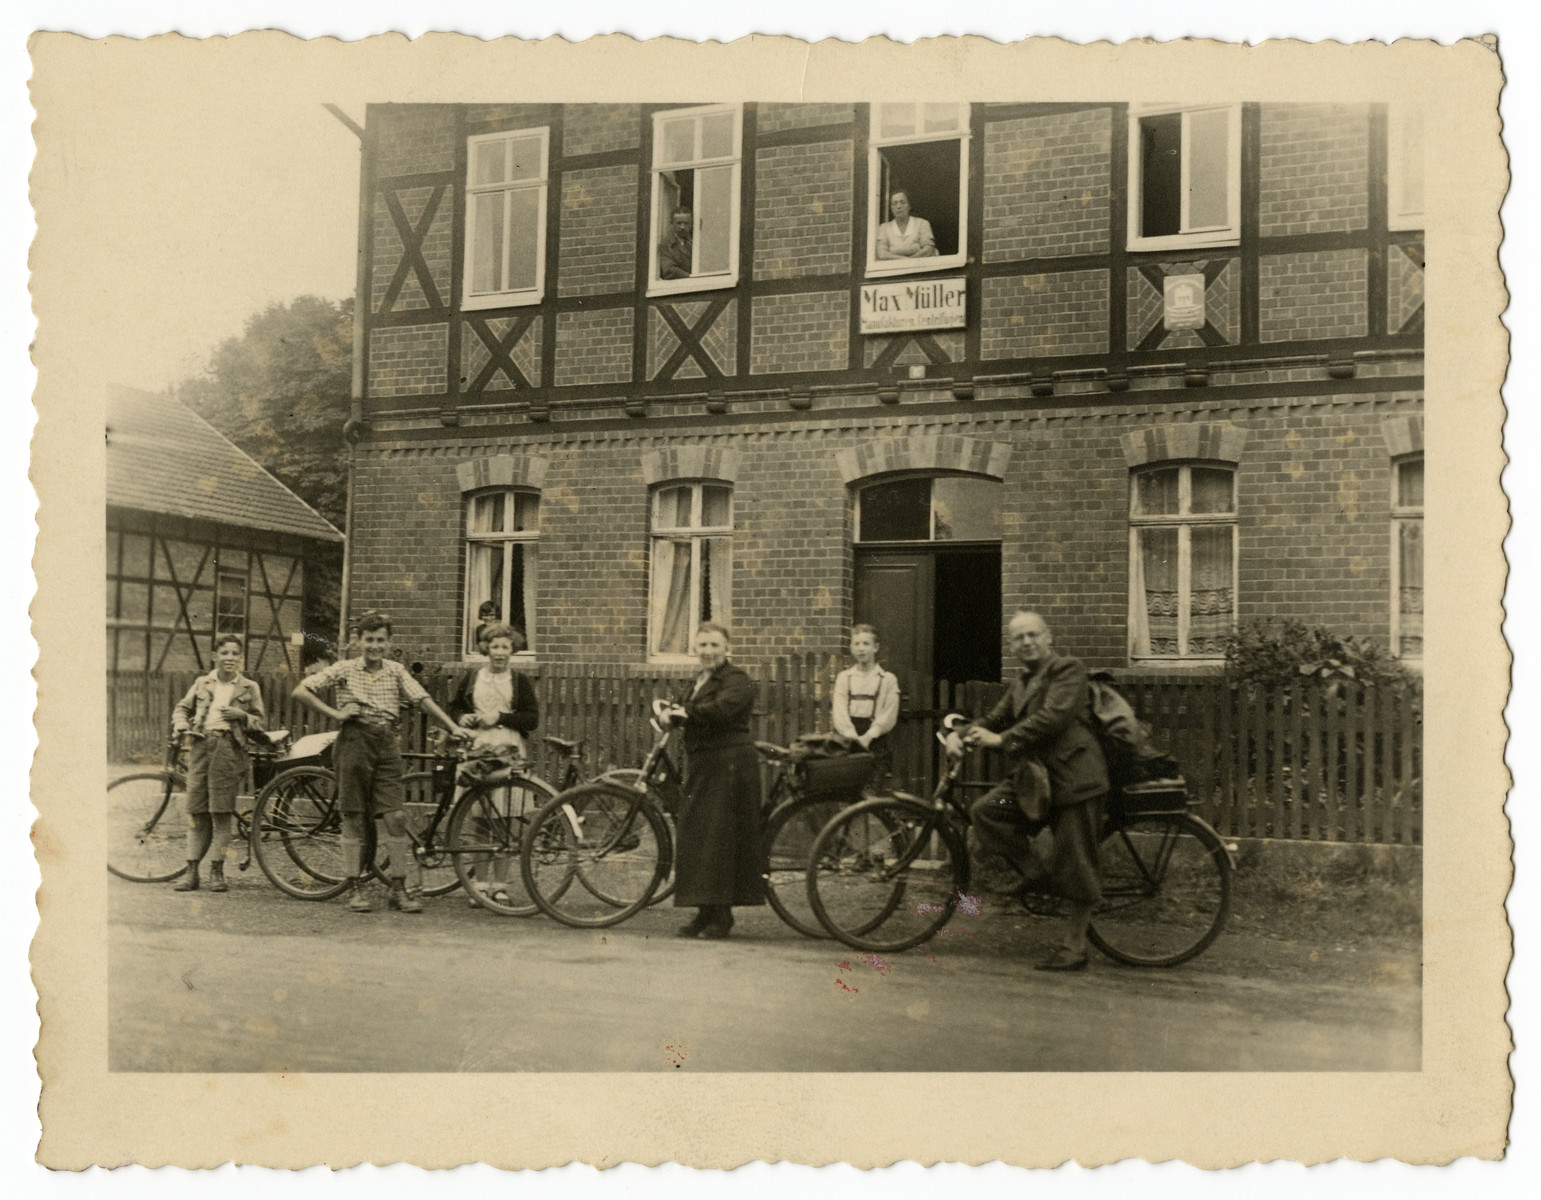 The Mueller family goes for a bicycle ride in front of the home of Sebald Mueller's brother, Max Mueller.  Standing with their bikes from left to right are:  Norbert Mueller, his cousin Ludwig Stahl, Suse Mueller, Laura Mueller and Sebald Mueller.  The young boy in the lederhosen standing in front of the gate is Norbert's cousin Willy Mueller, the son of Max Mueller, who appears in the second window from the left on the top floor. Max's wife is in the next window over.